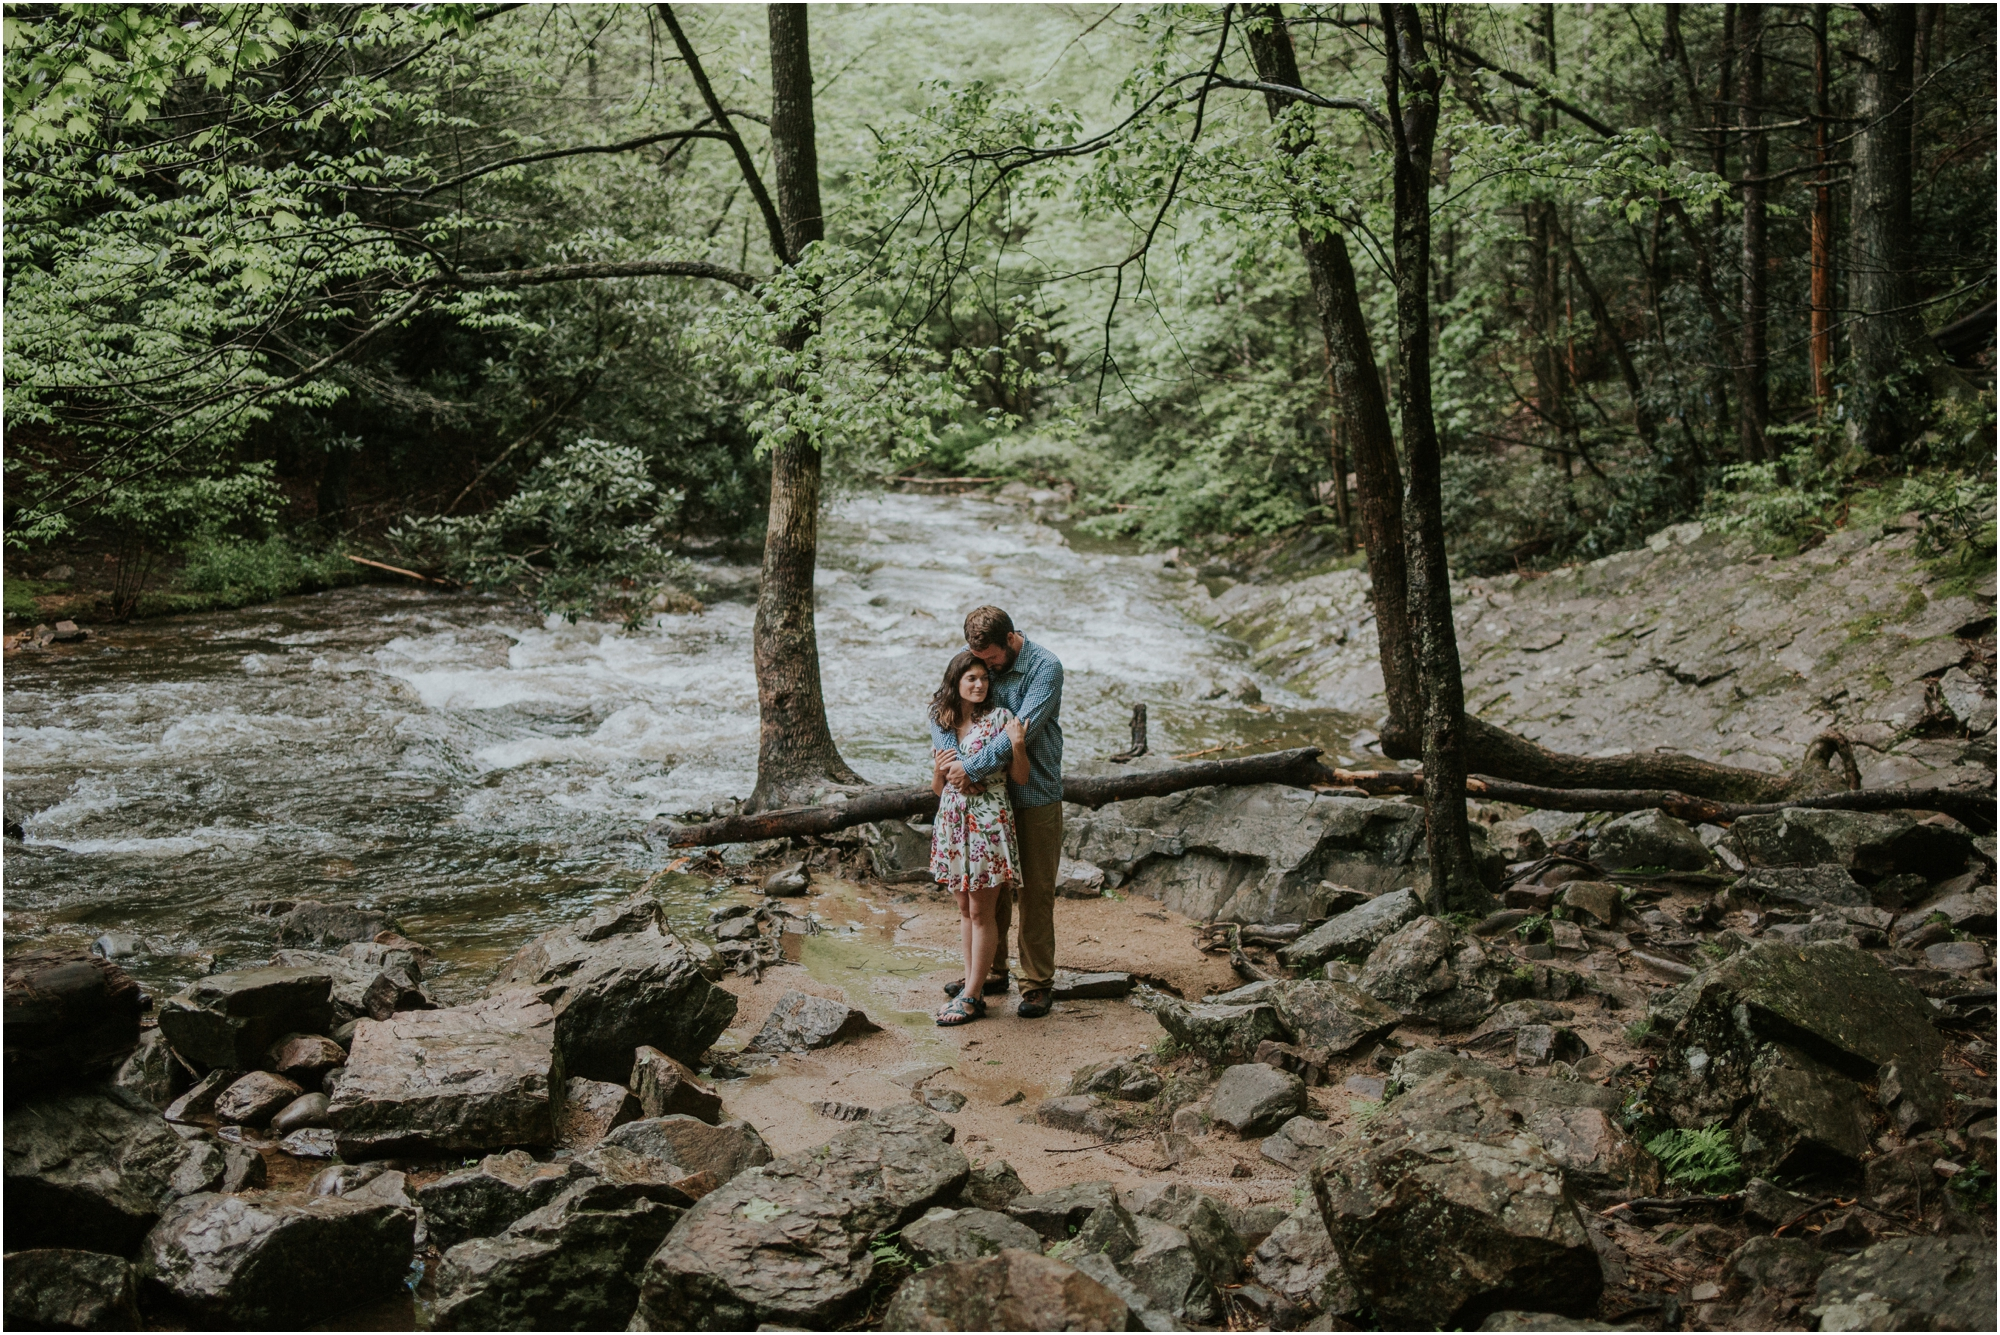 northeast-tennessee-national-forest-waterfall-engagement-session-rhododendrons-johnson-city-photographer-katy-sergent_0019.jpg